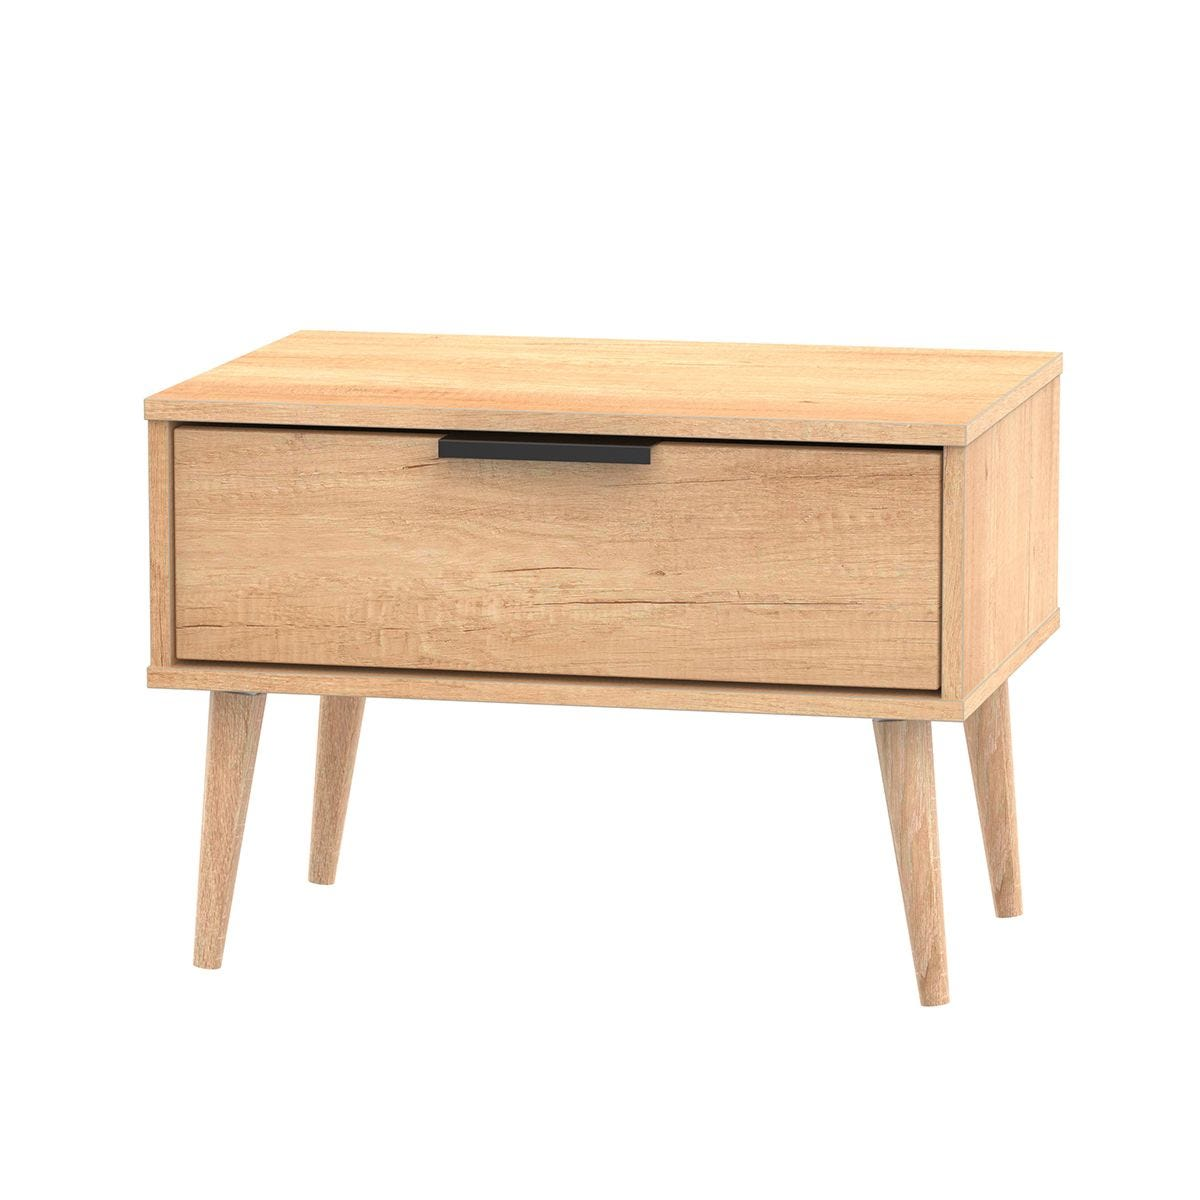 Hirato 1 Drawer Soft Oak Midi Chest With Black Hairpin Legs